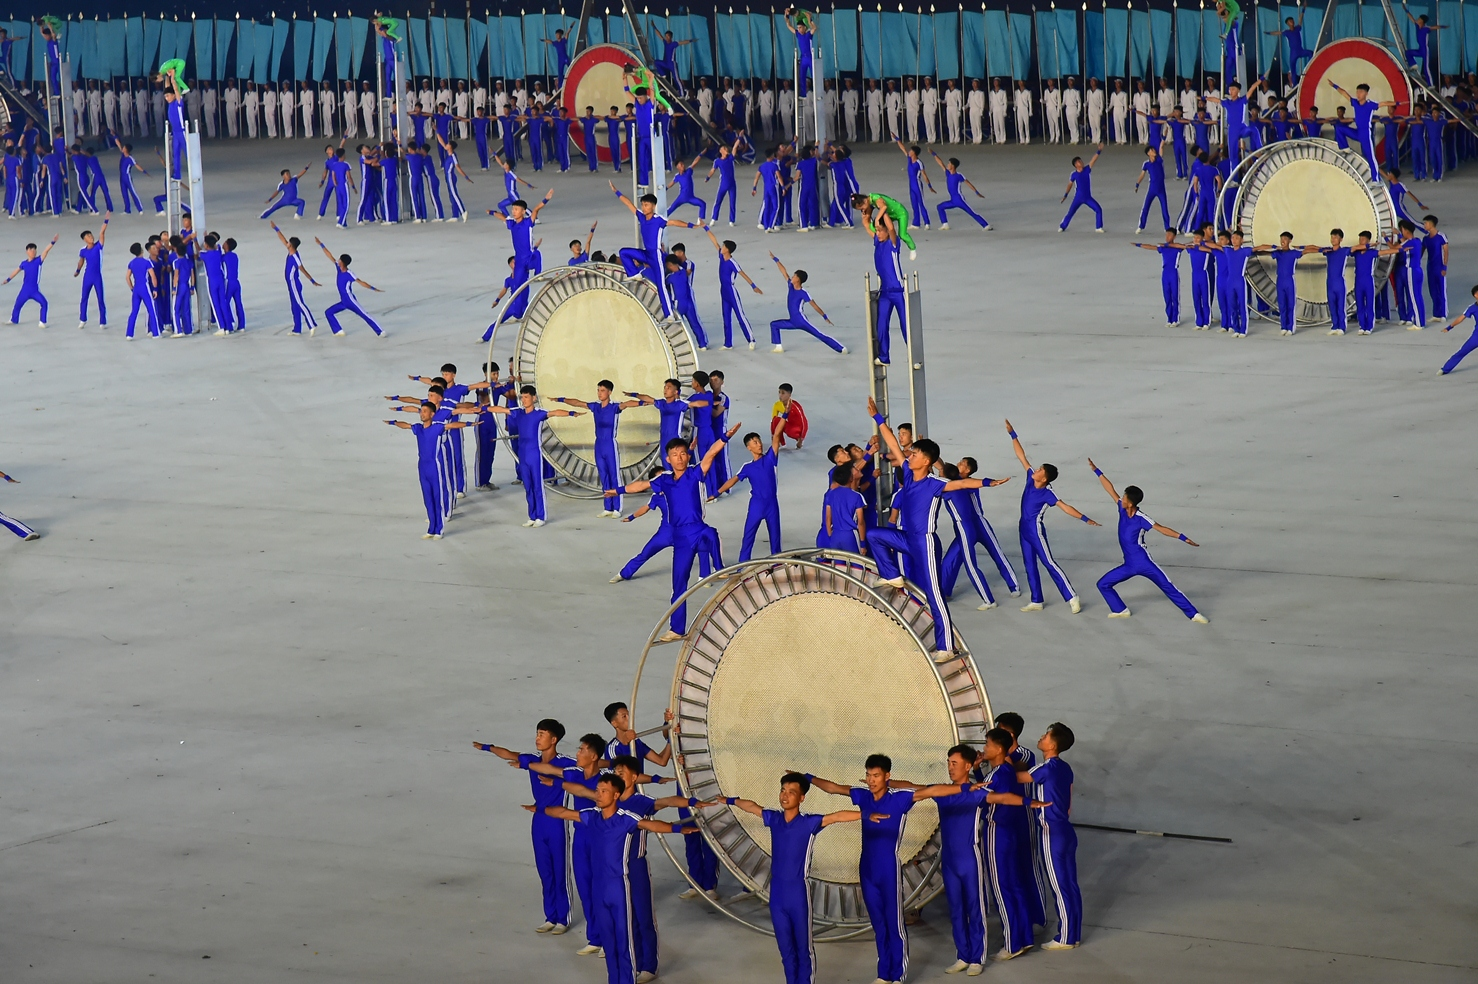 Activity at Pyongyang's May Day Stadium hints at early start for 2019 mass games